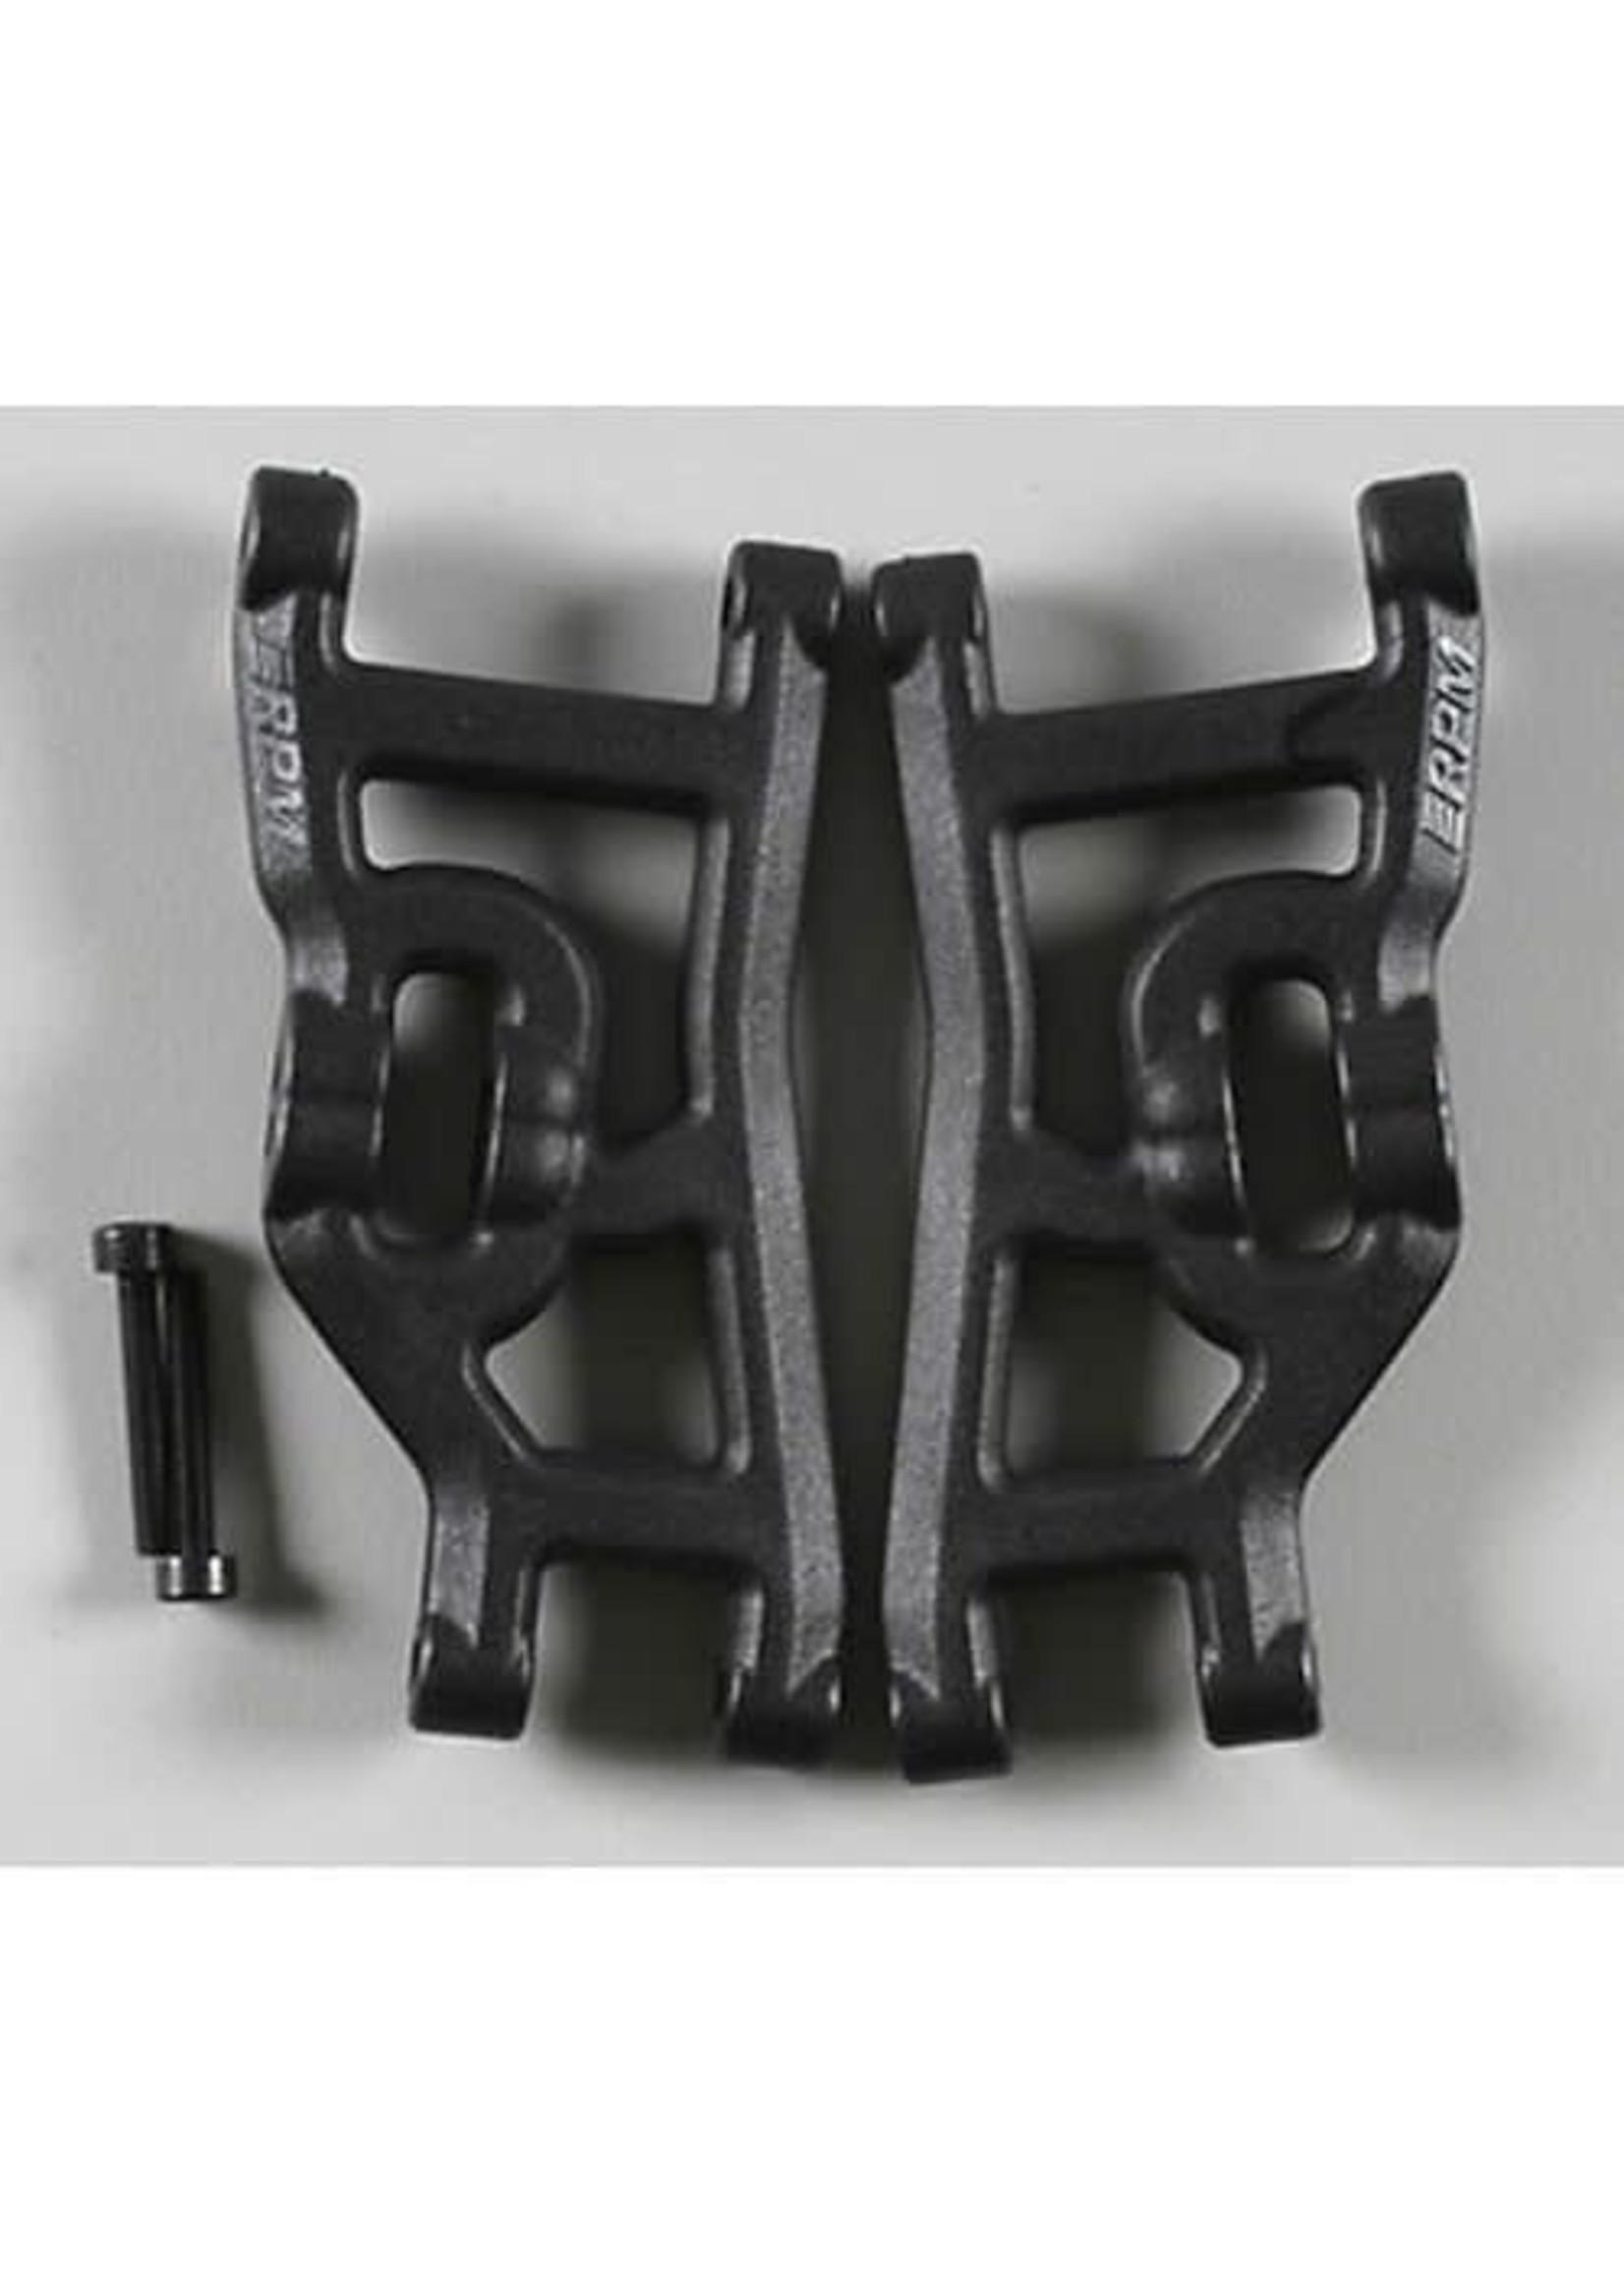 RPM RPM80492 RPM Front A-Arms, for Traxxas Nitro, Rustler, Stampede, Sport, Black